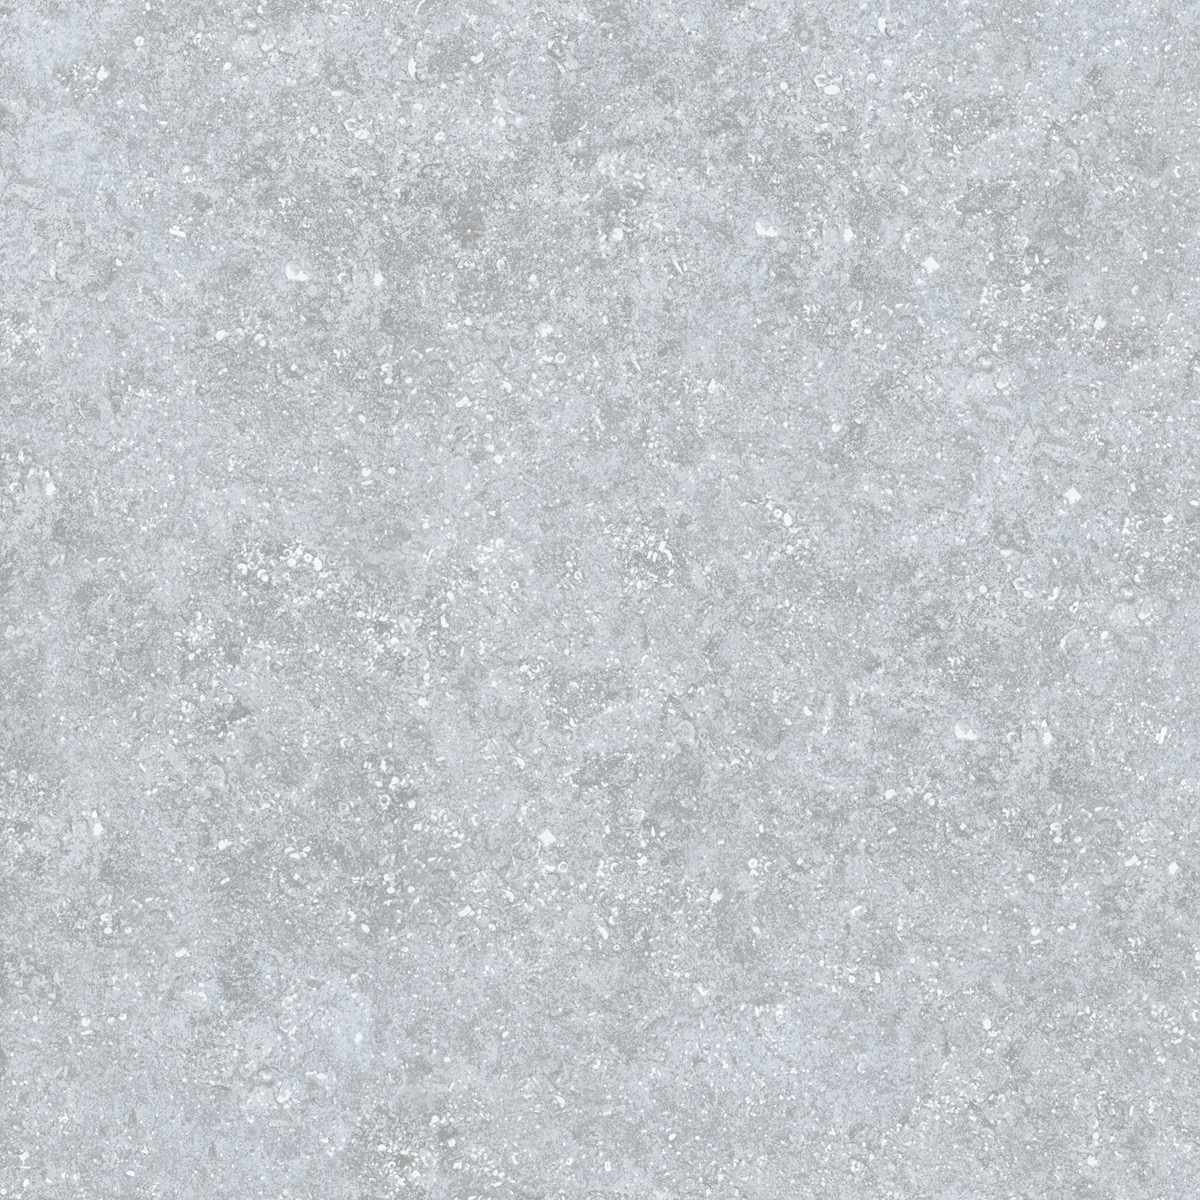 Carrelage 60x60 gris clair cool carrelage x gris clair for Carrelage 60x60 gris clair